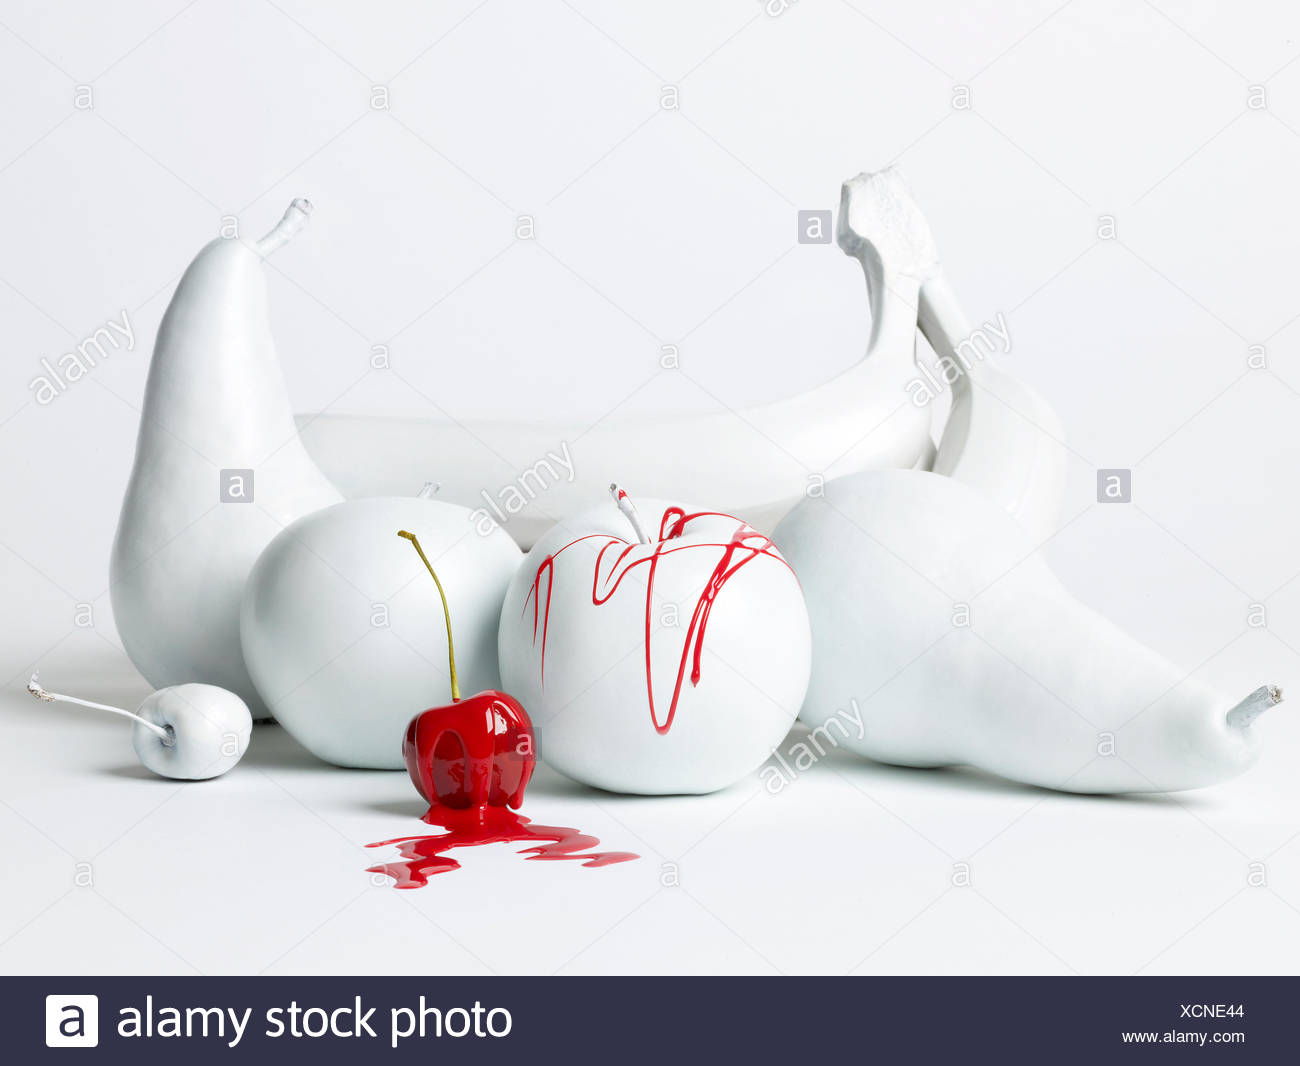 Surreal still life. - Stock Image